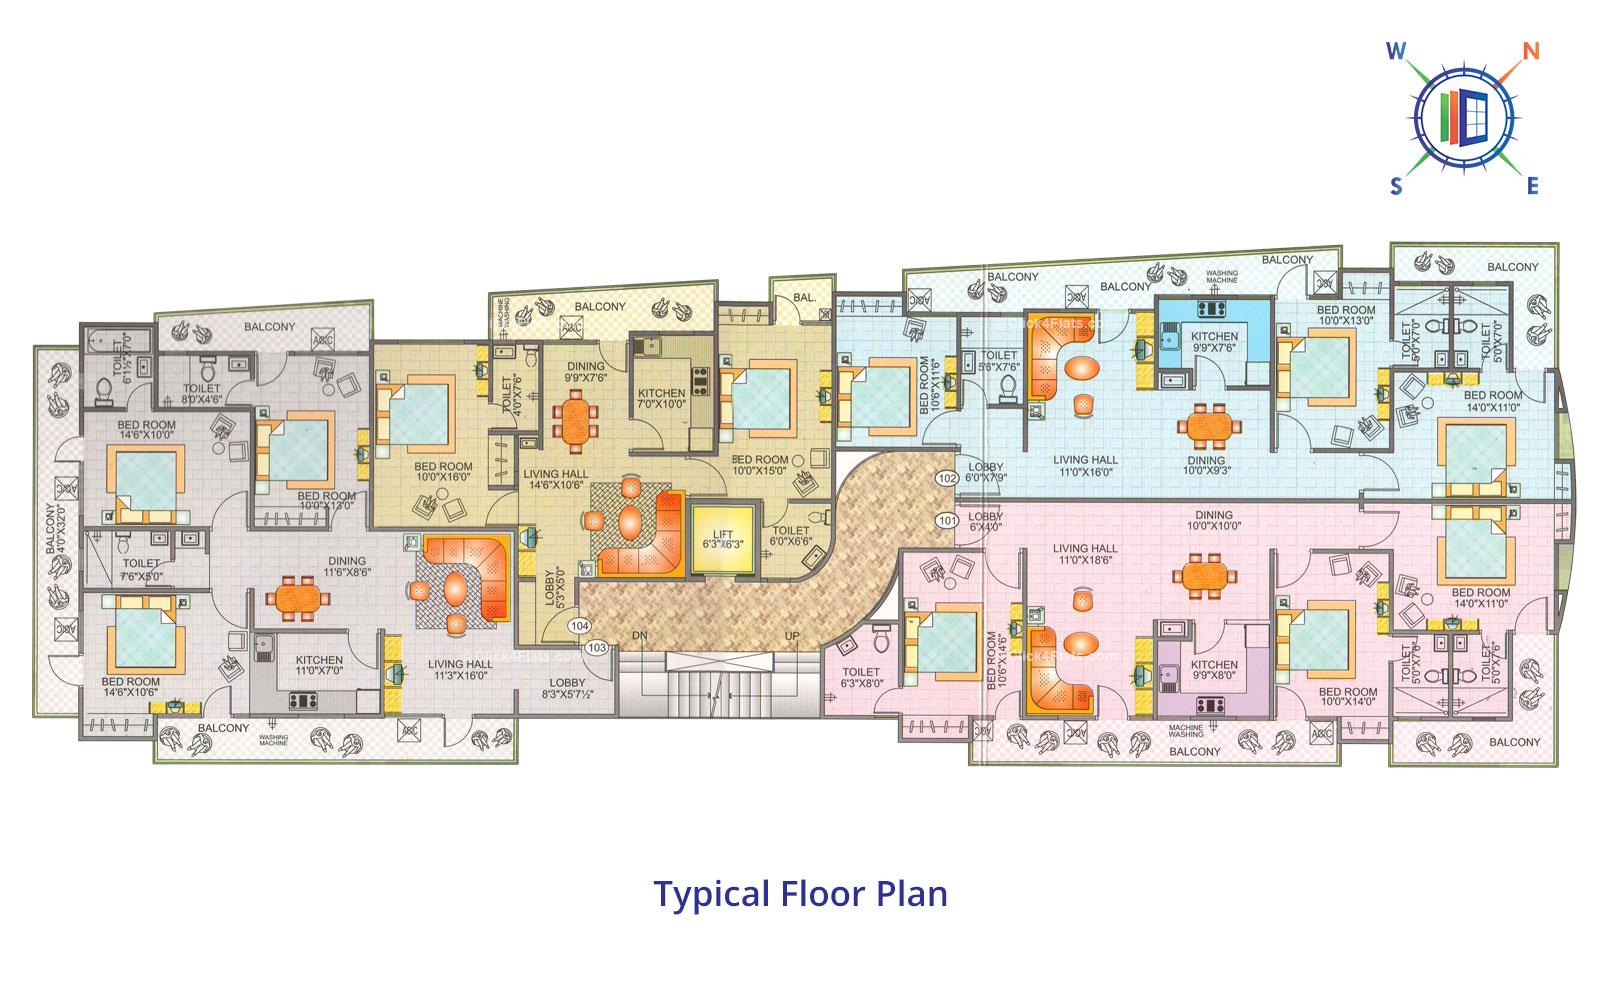 Blue Sky Apartments Typical Floor Plan